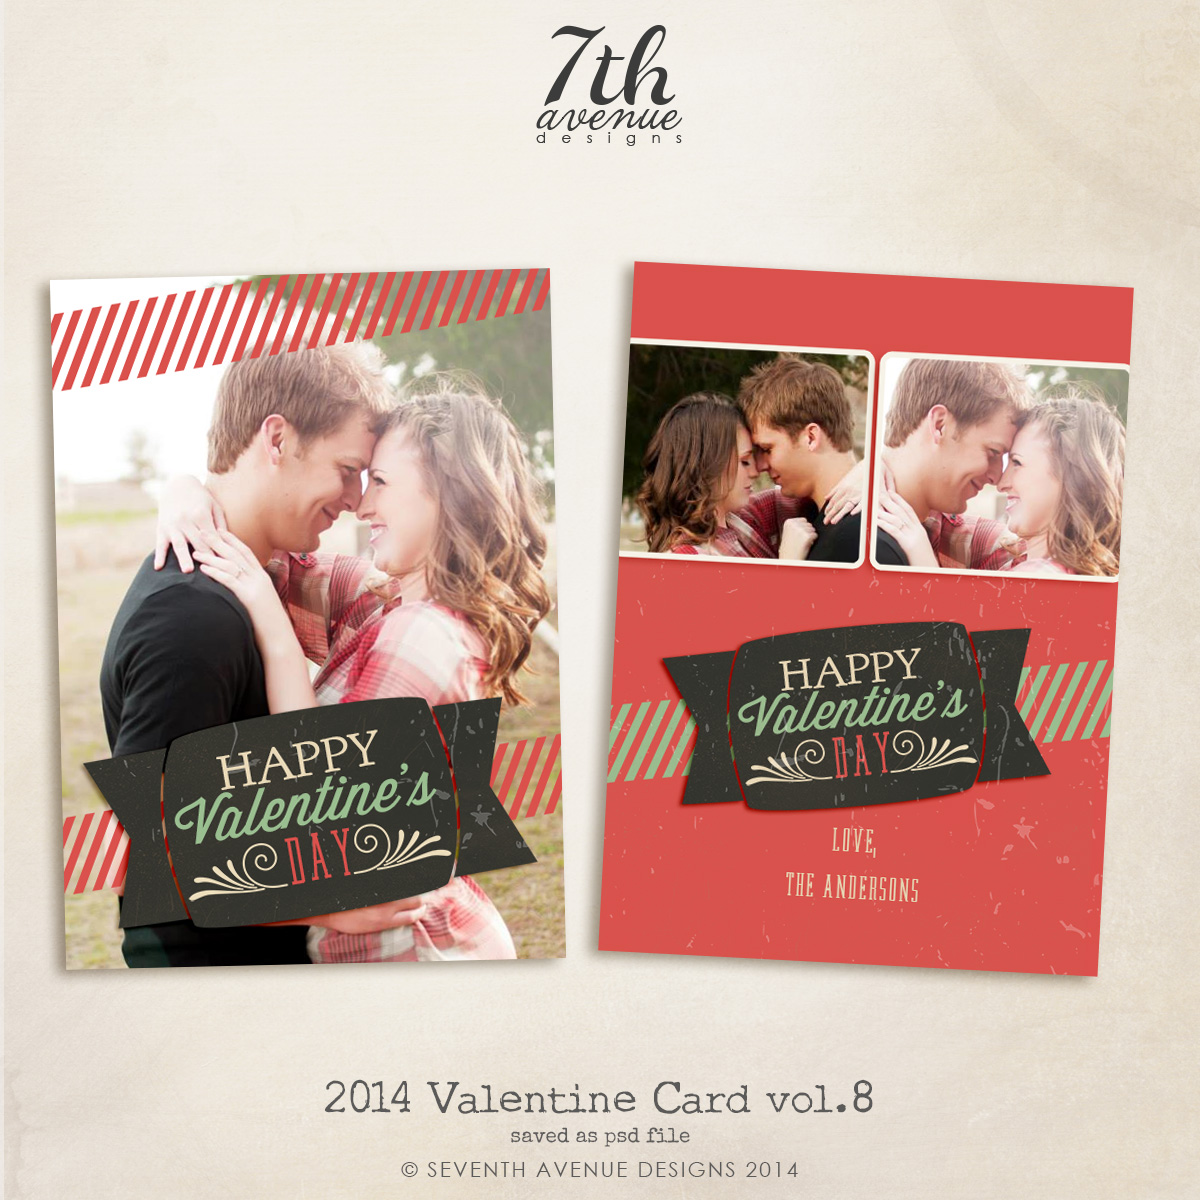 2014 Valentines Card vol.8